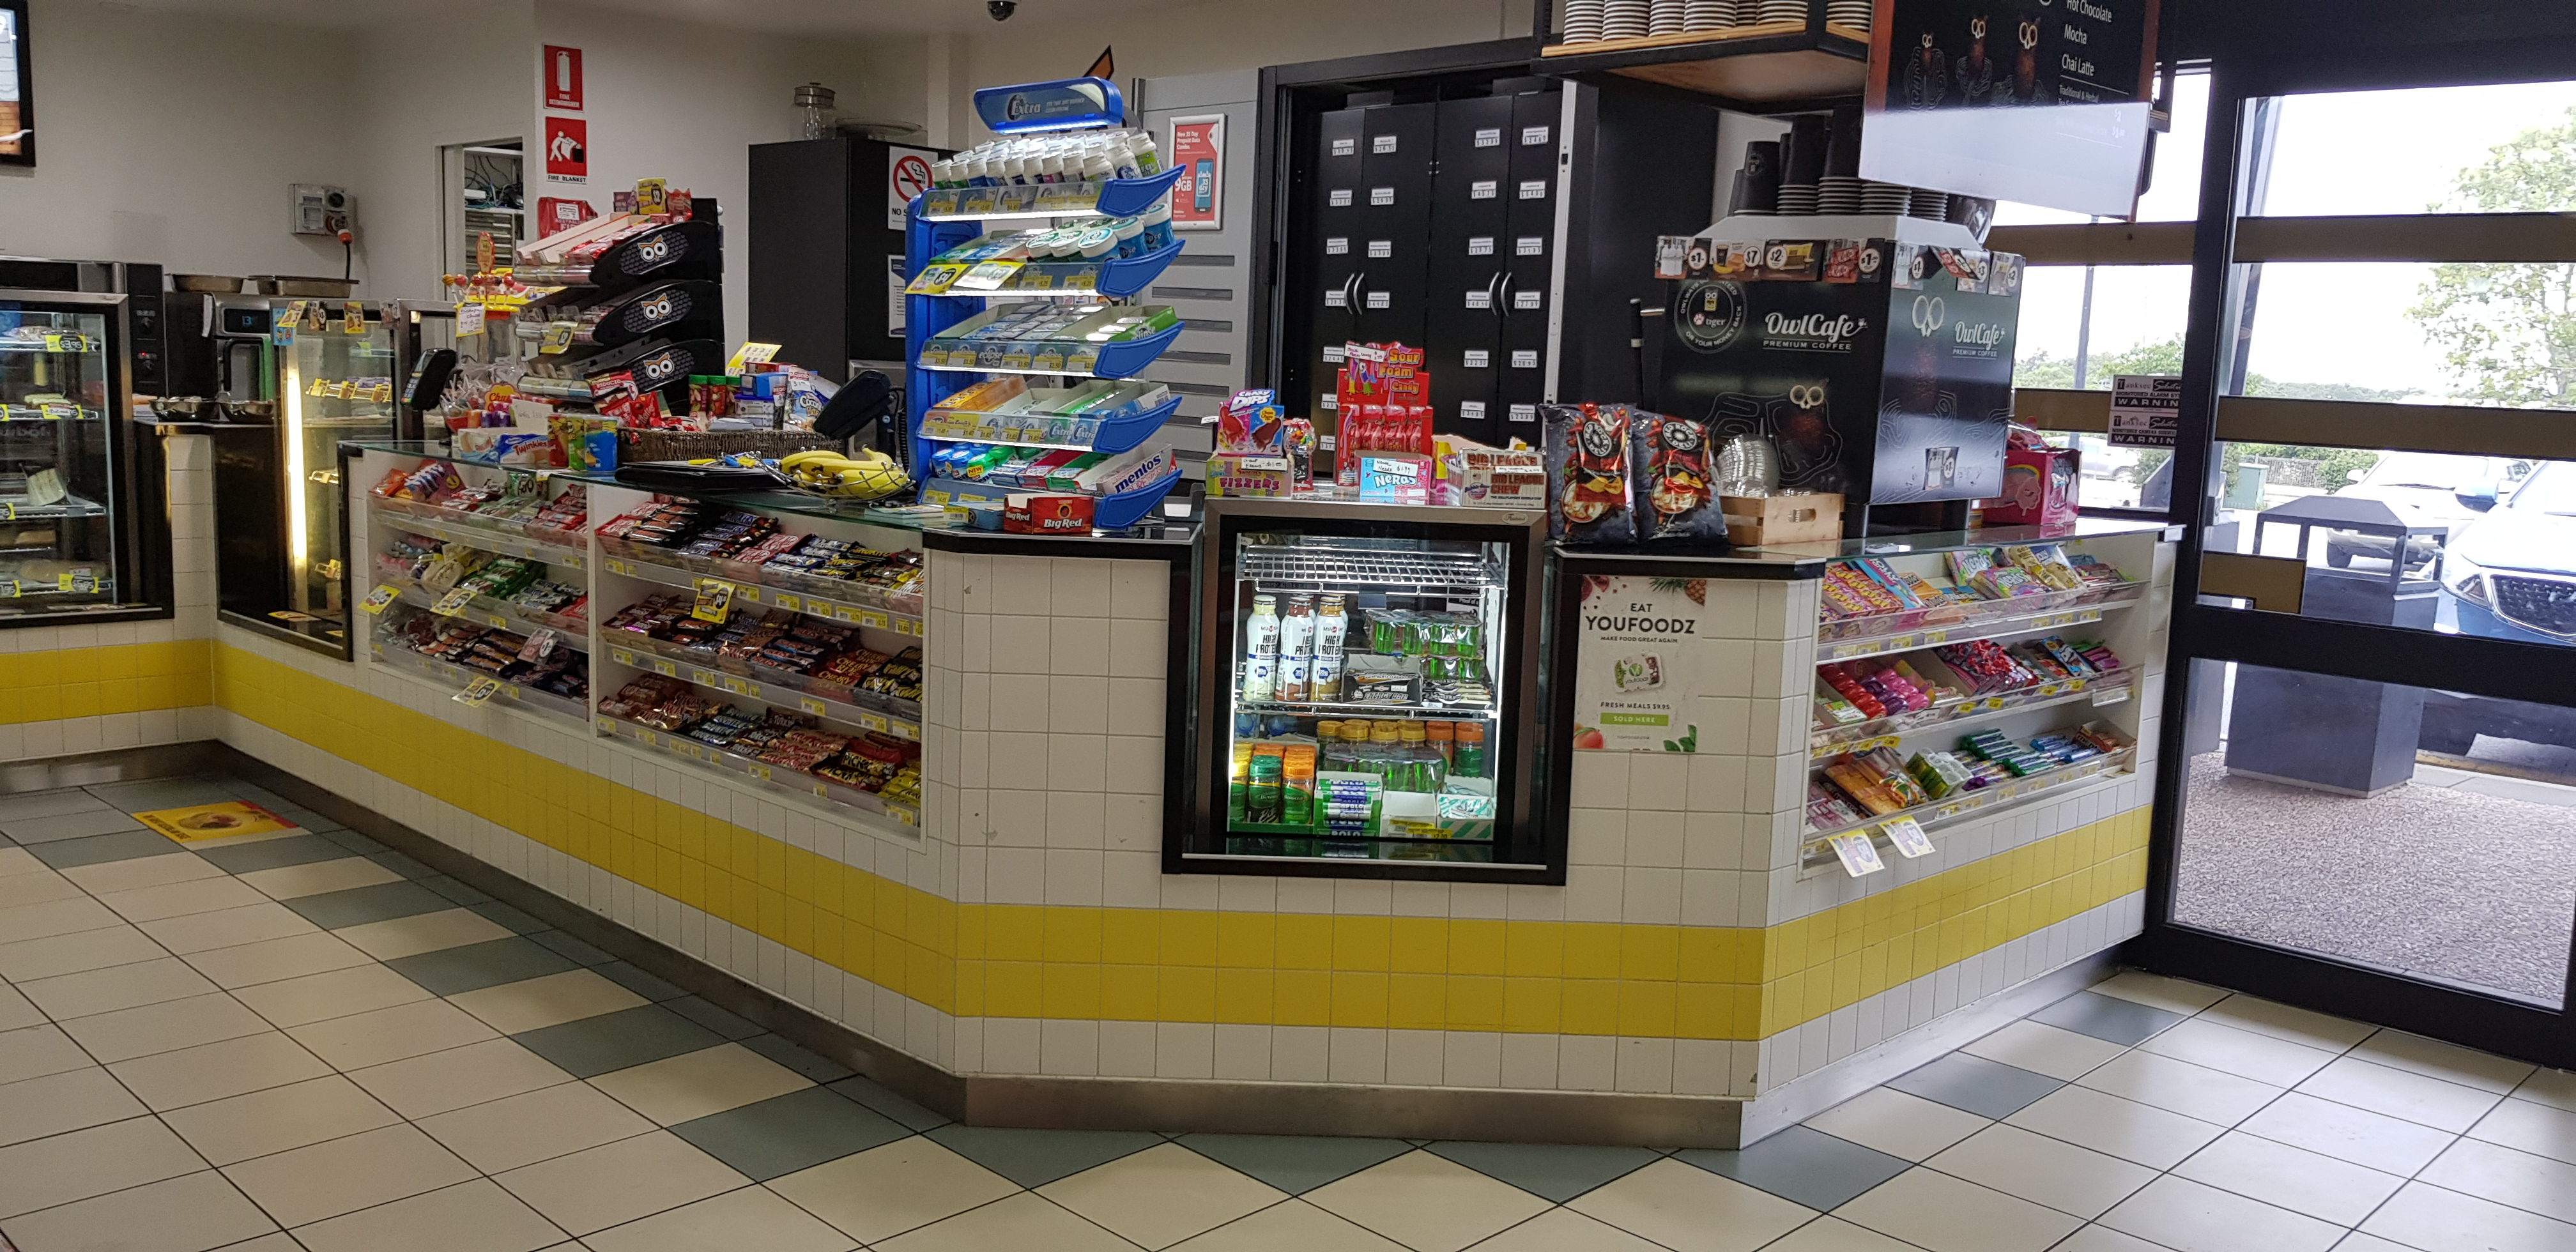 BRANDED SUPERMARKET / CONVENIENCE STORE / FAMOUS BRAND - WALK IN WALK OUT